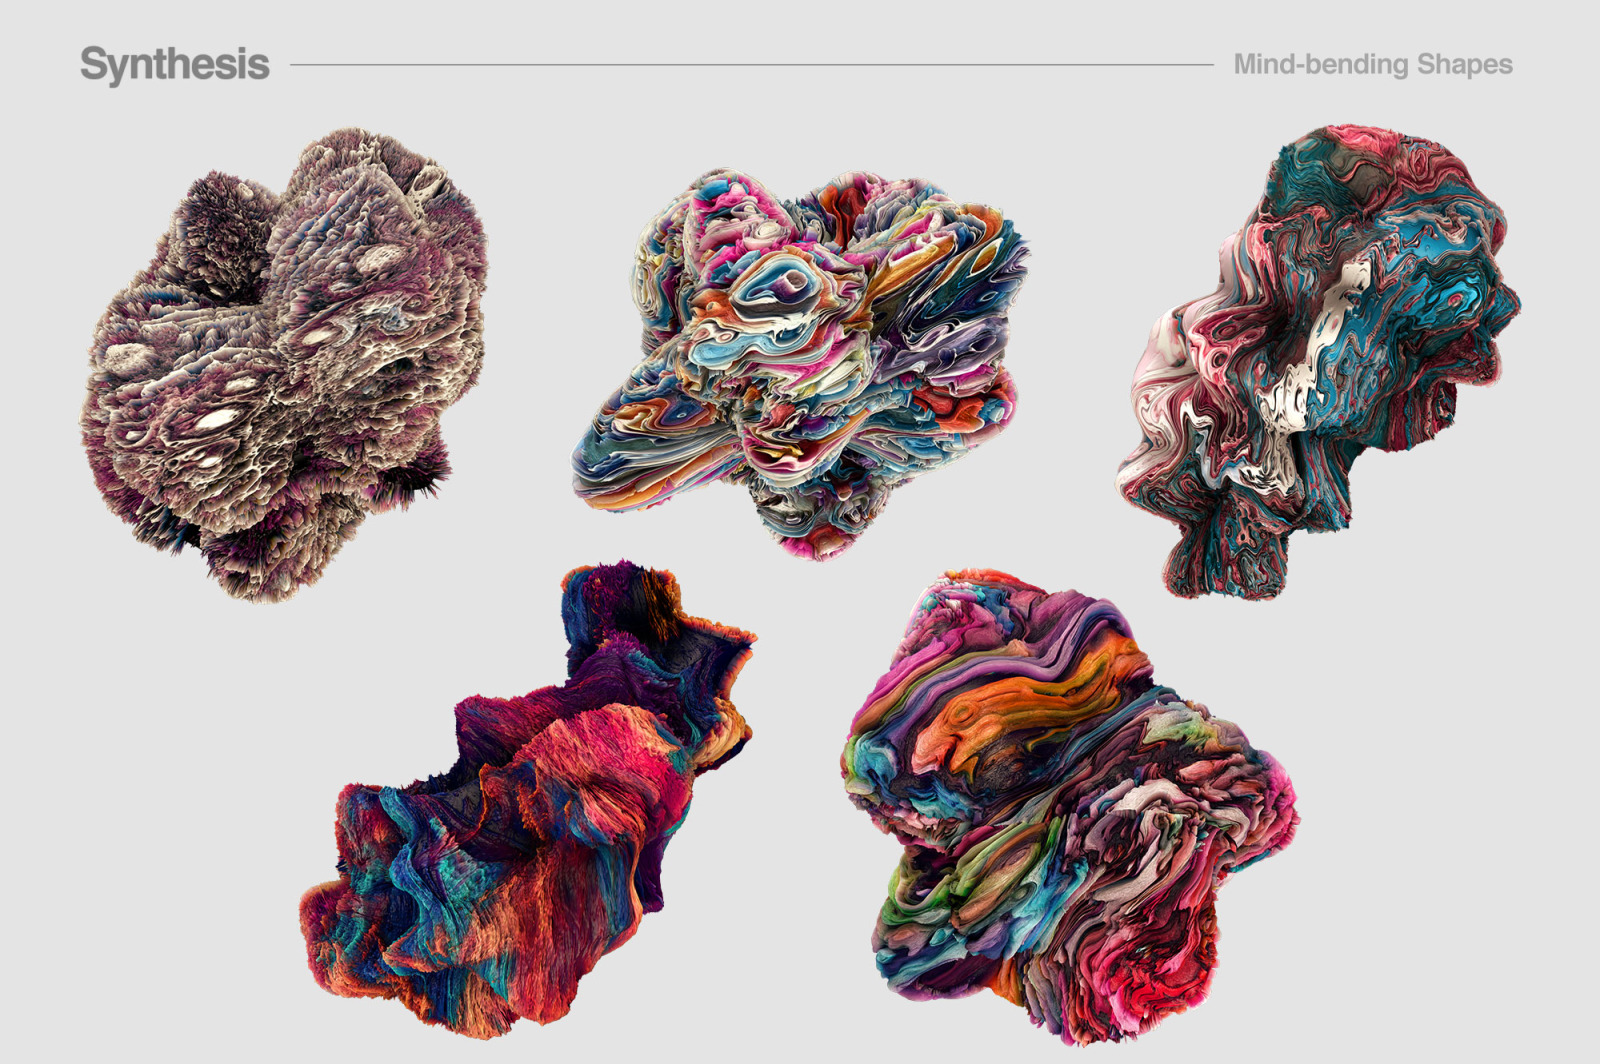 Synthesis: Mind-bending Shapes